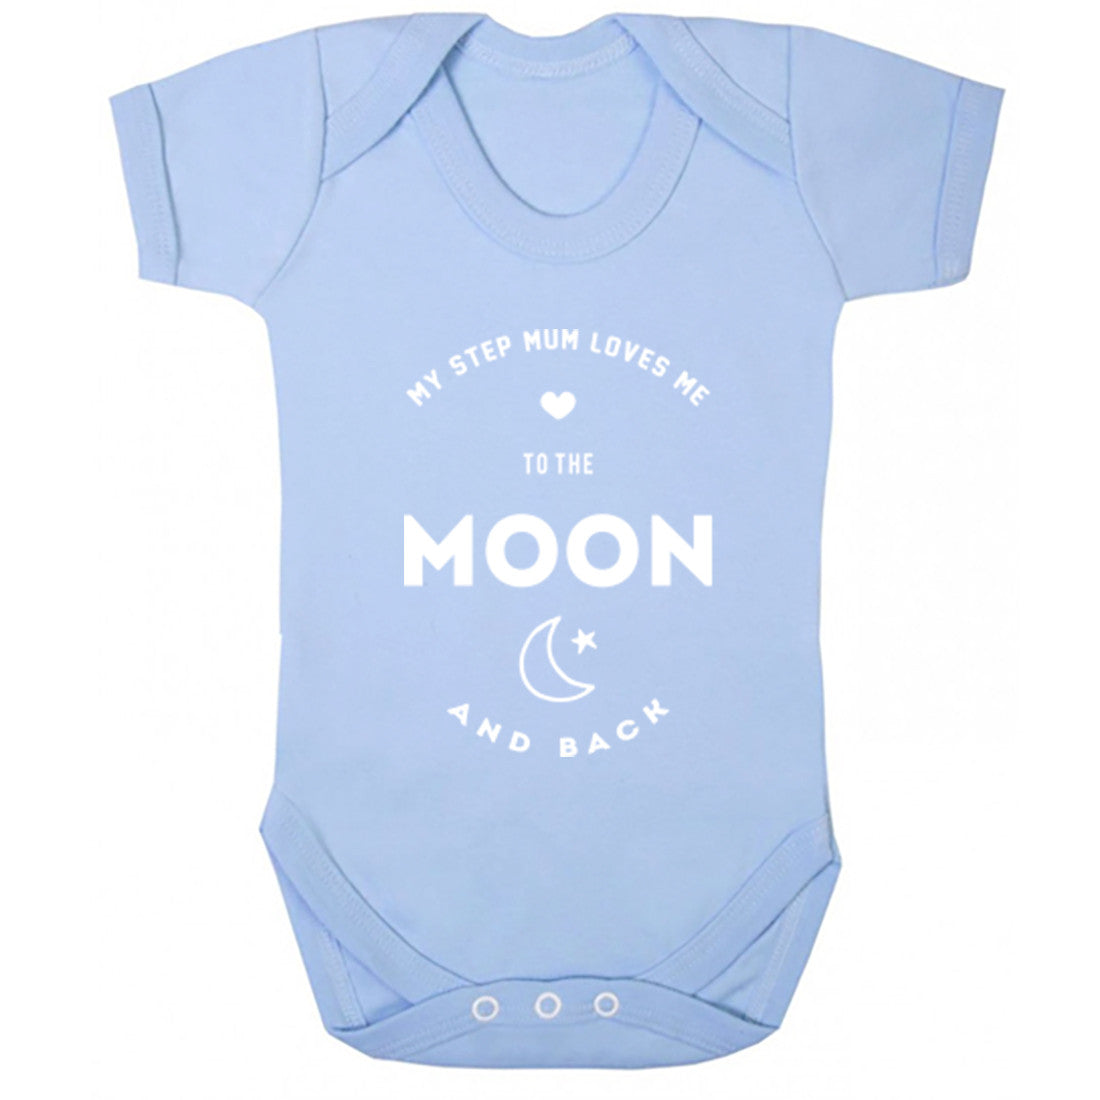 My Step Mum Loves Me To The Moon And Back Baby Vest K1550 - Illustrated Identity Ltd.